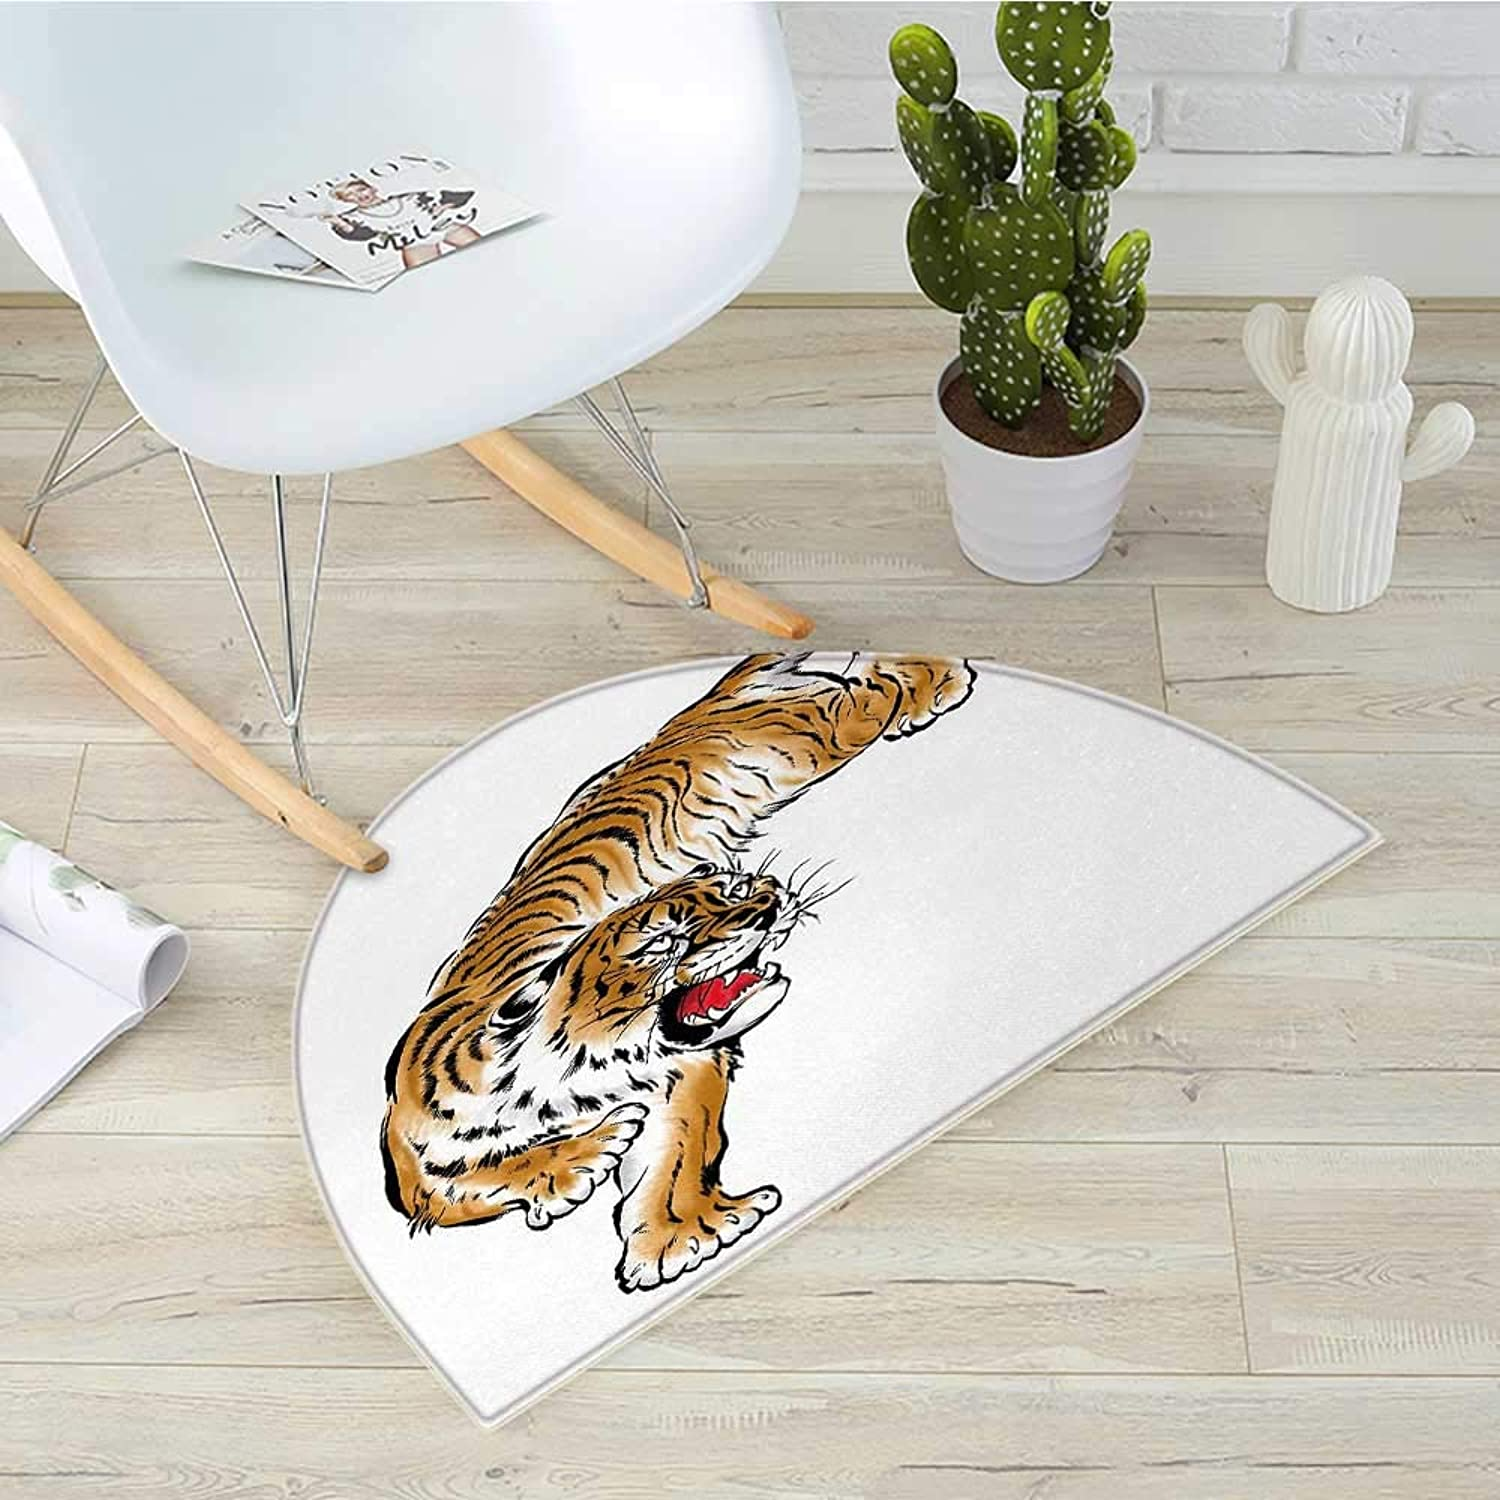 Tiger Semicircle Doormat Japanese Inspired Large Feline Japanesque Design Free Hand Drawing Traditional Halfmoon doormats H 39.3  xD 59  Black Pale Brown